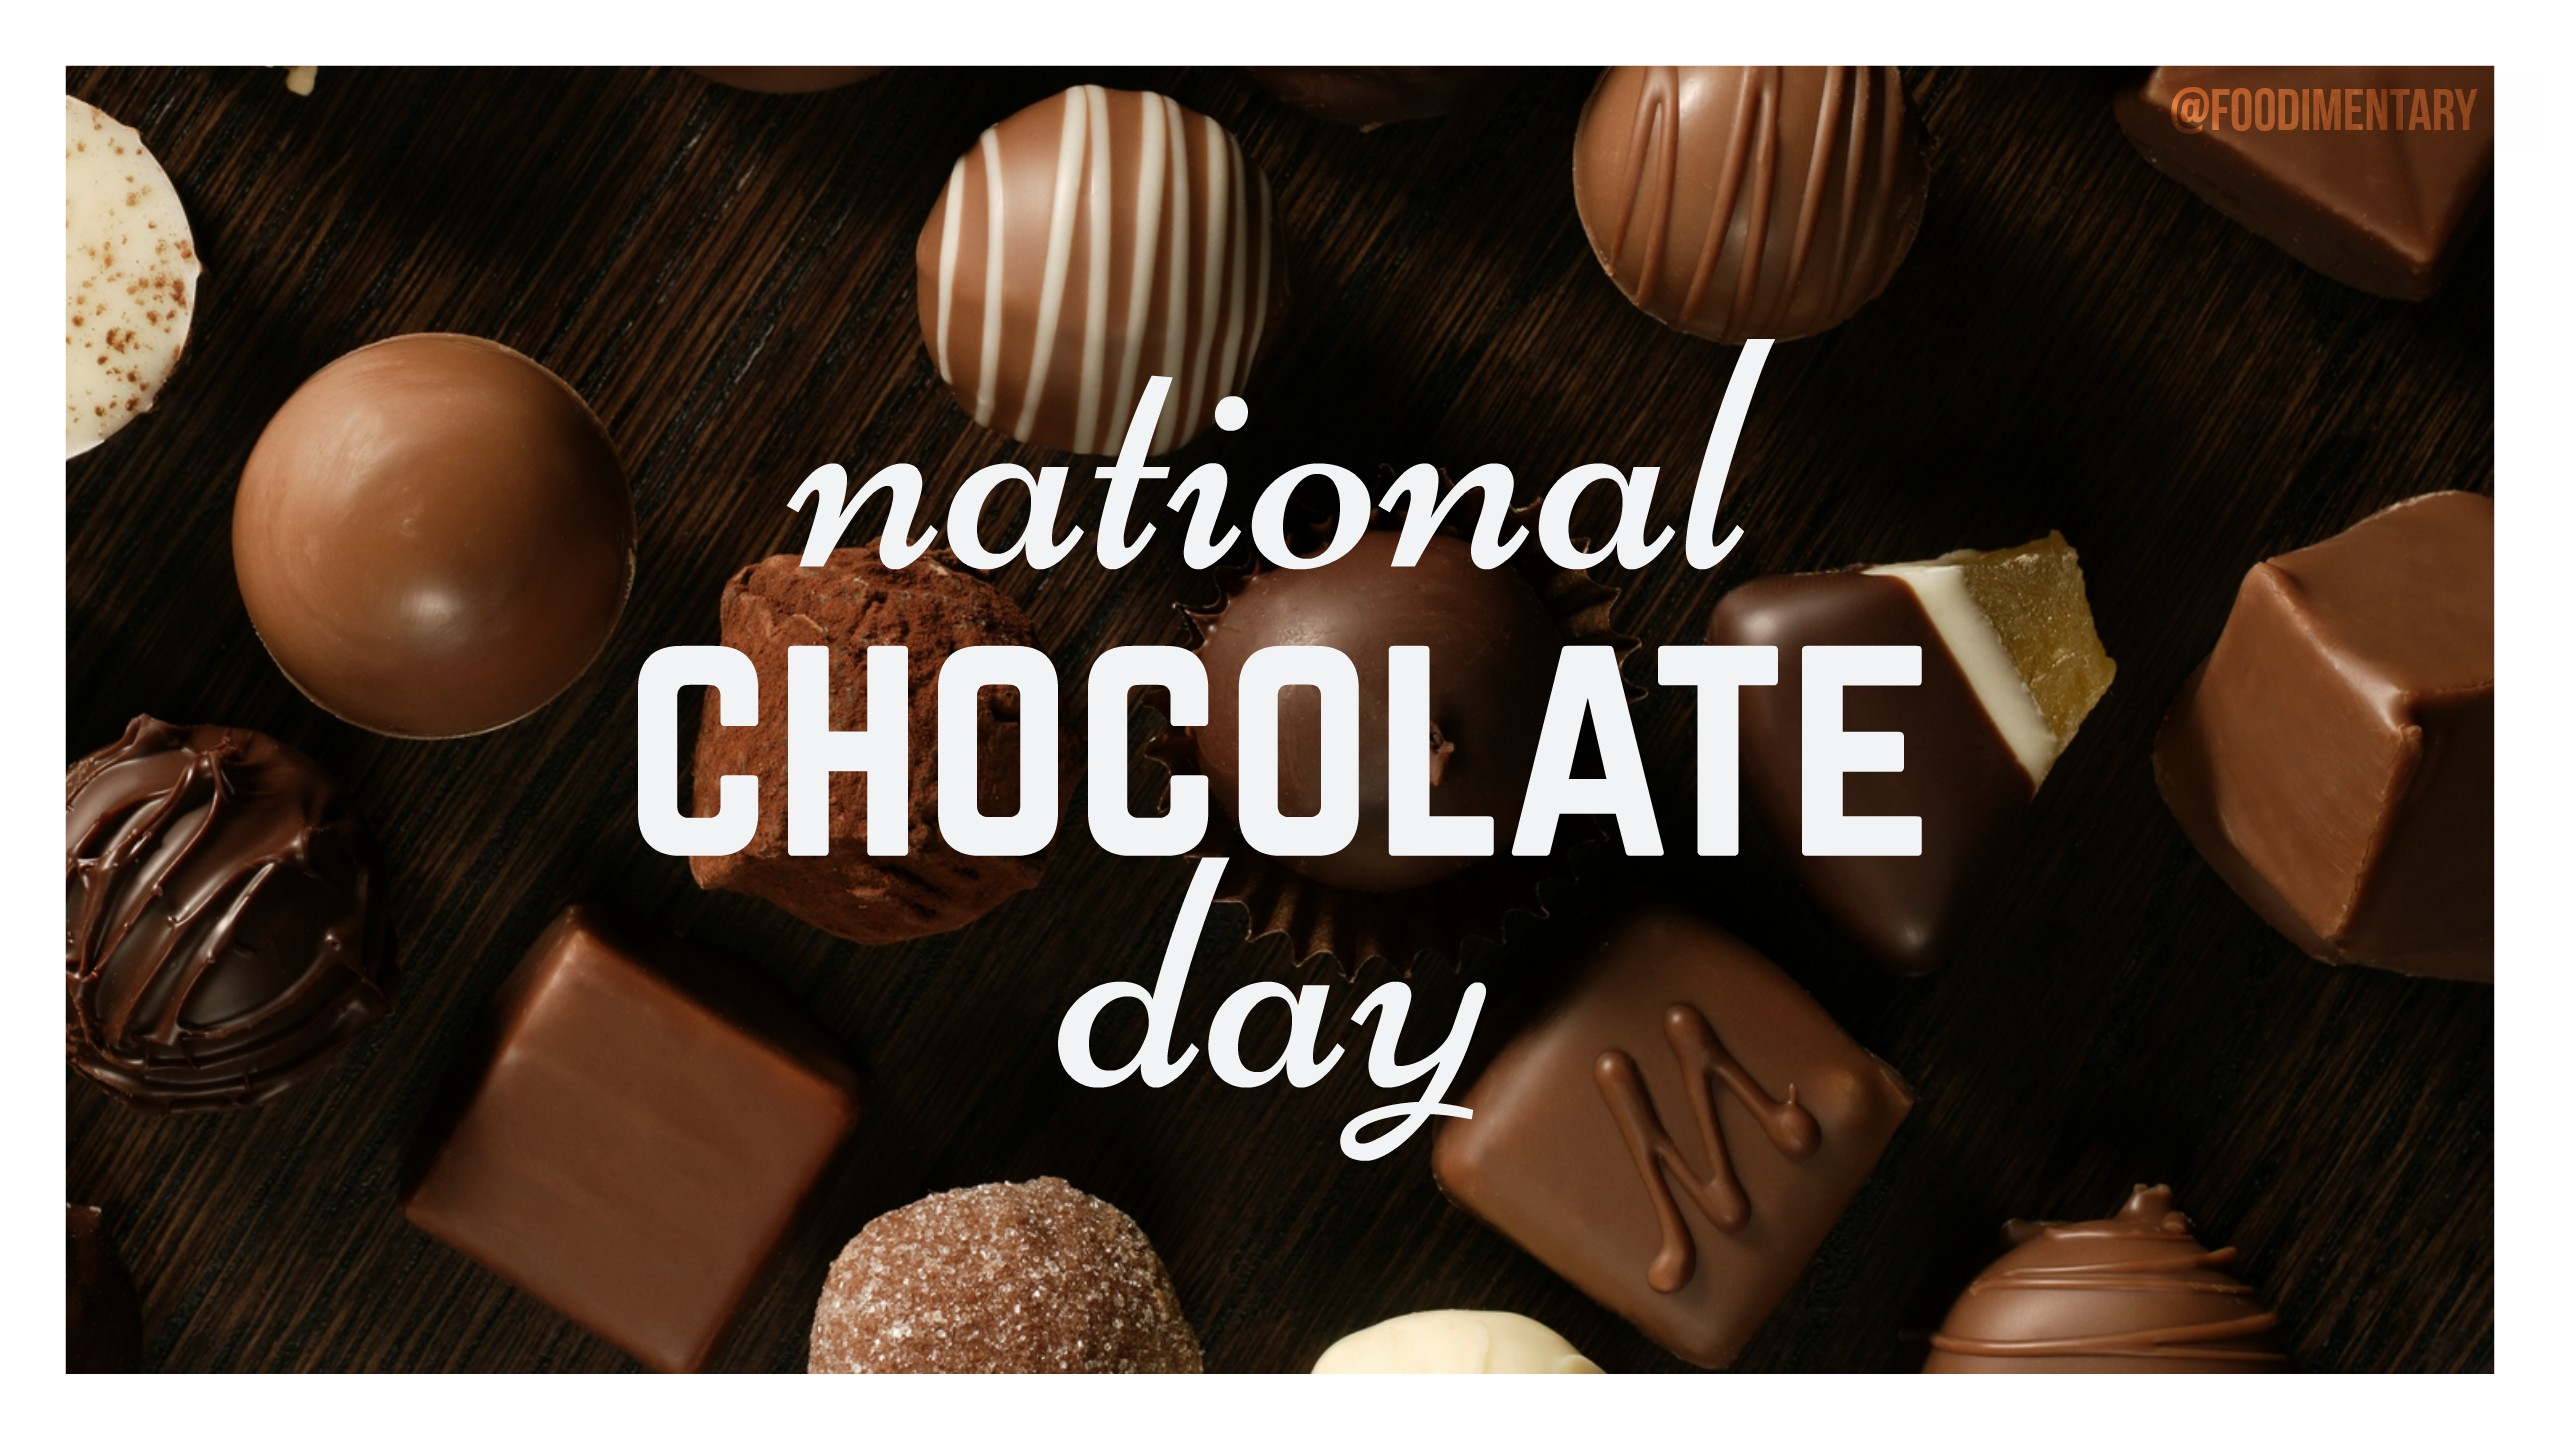 October 28th is National Chocolate Day! | Foodimentary - National ...